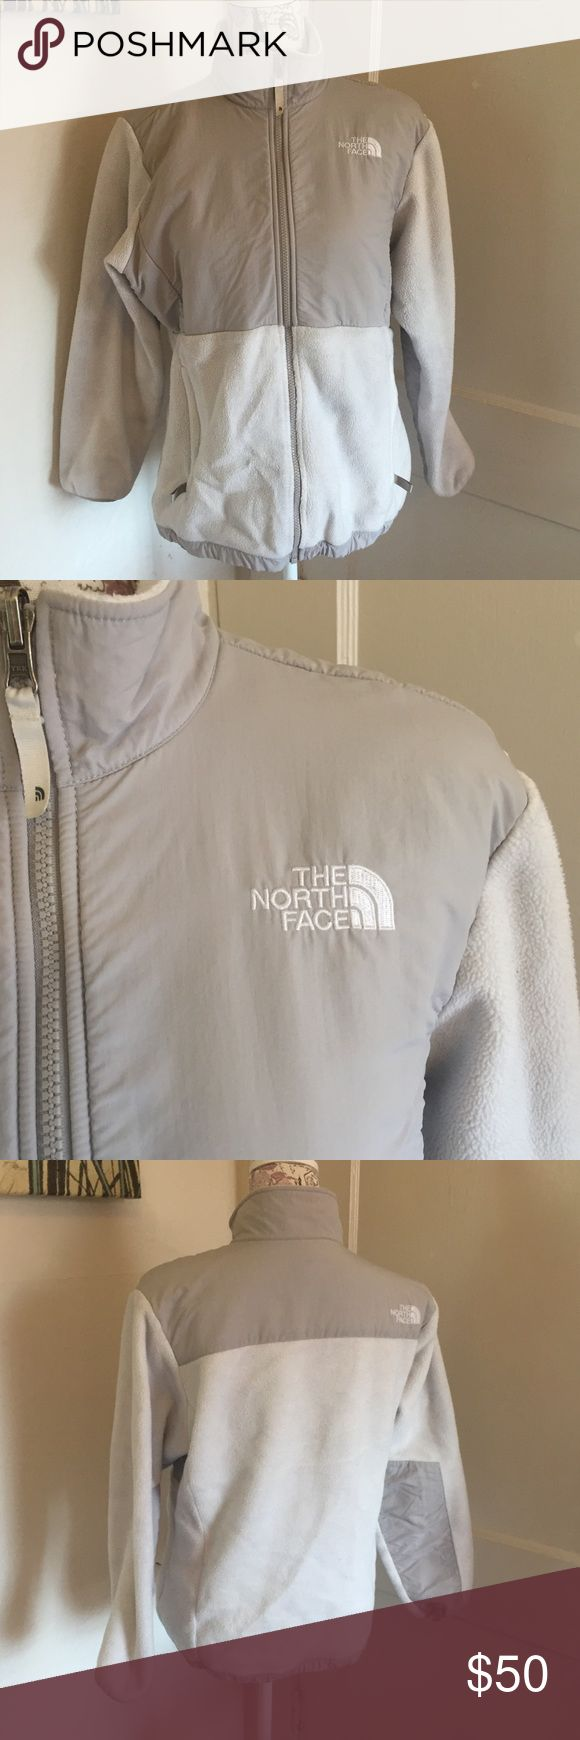 White and gray north face  girls Denali jacket 🎀 grey and white  🎀 size do girls can fit woman's small 🎀 gently used 🎀Please ask for additional pictures, measurements, or ask questions before purchase 🎀No trades or other apps. 🎀Ships next business day, unless noted in my closet  🎀Reasonable offers accepted through the offer button 🎀Five star rating 🎀Bundle for discount North Face Jackets & Coats